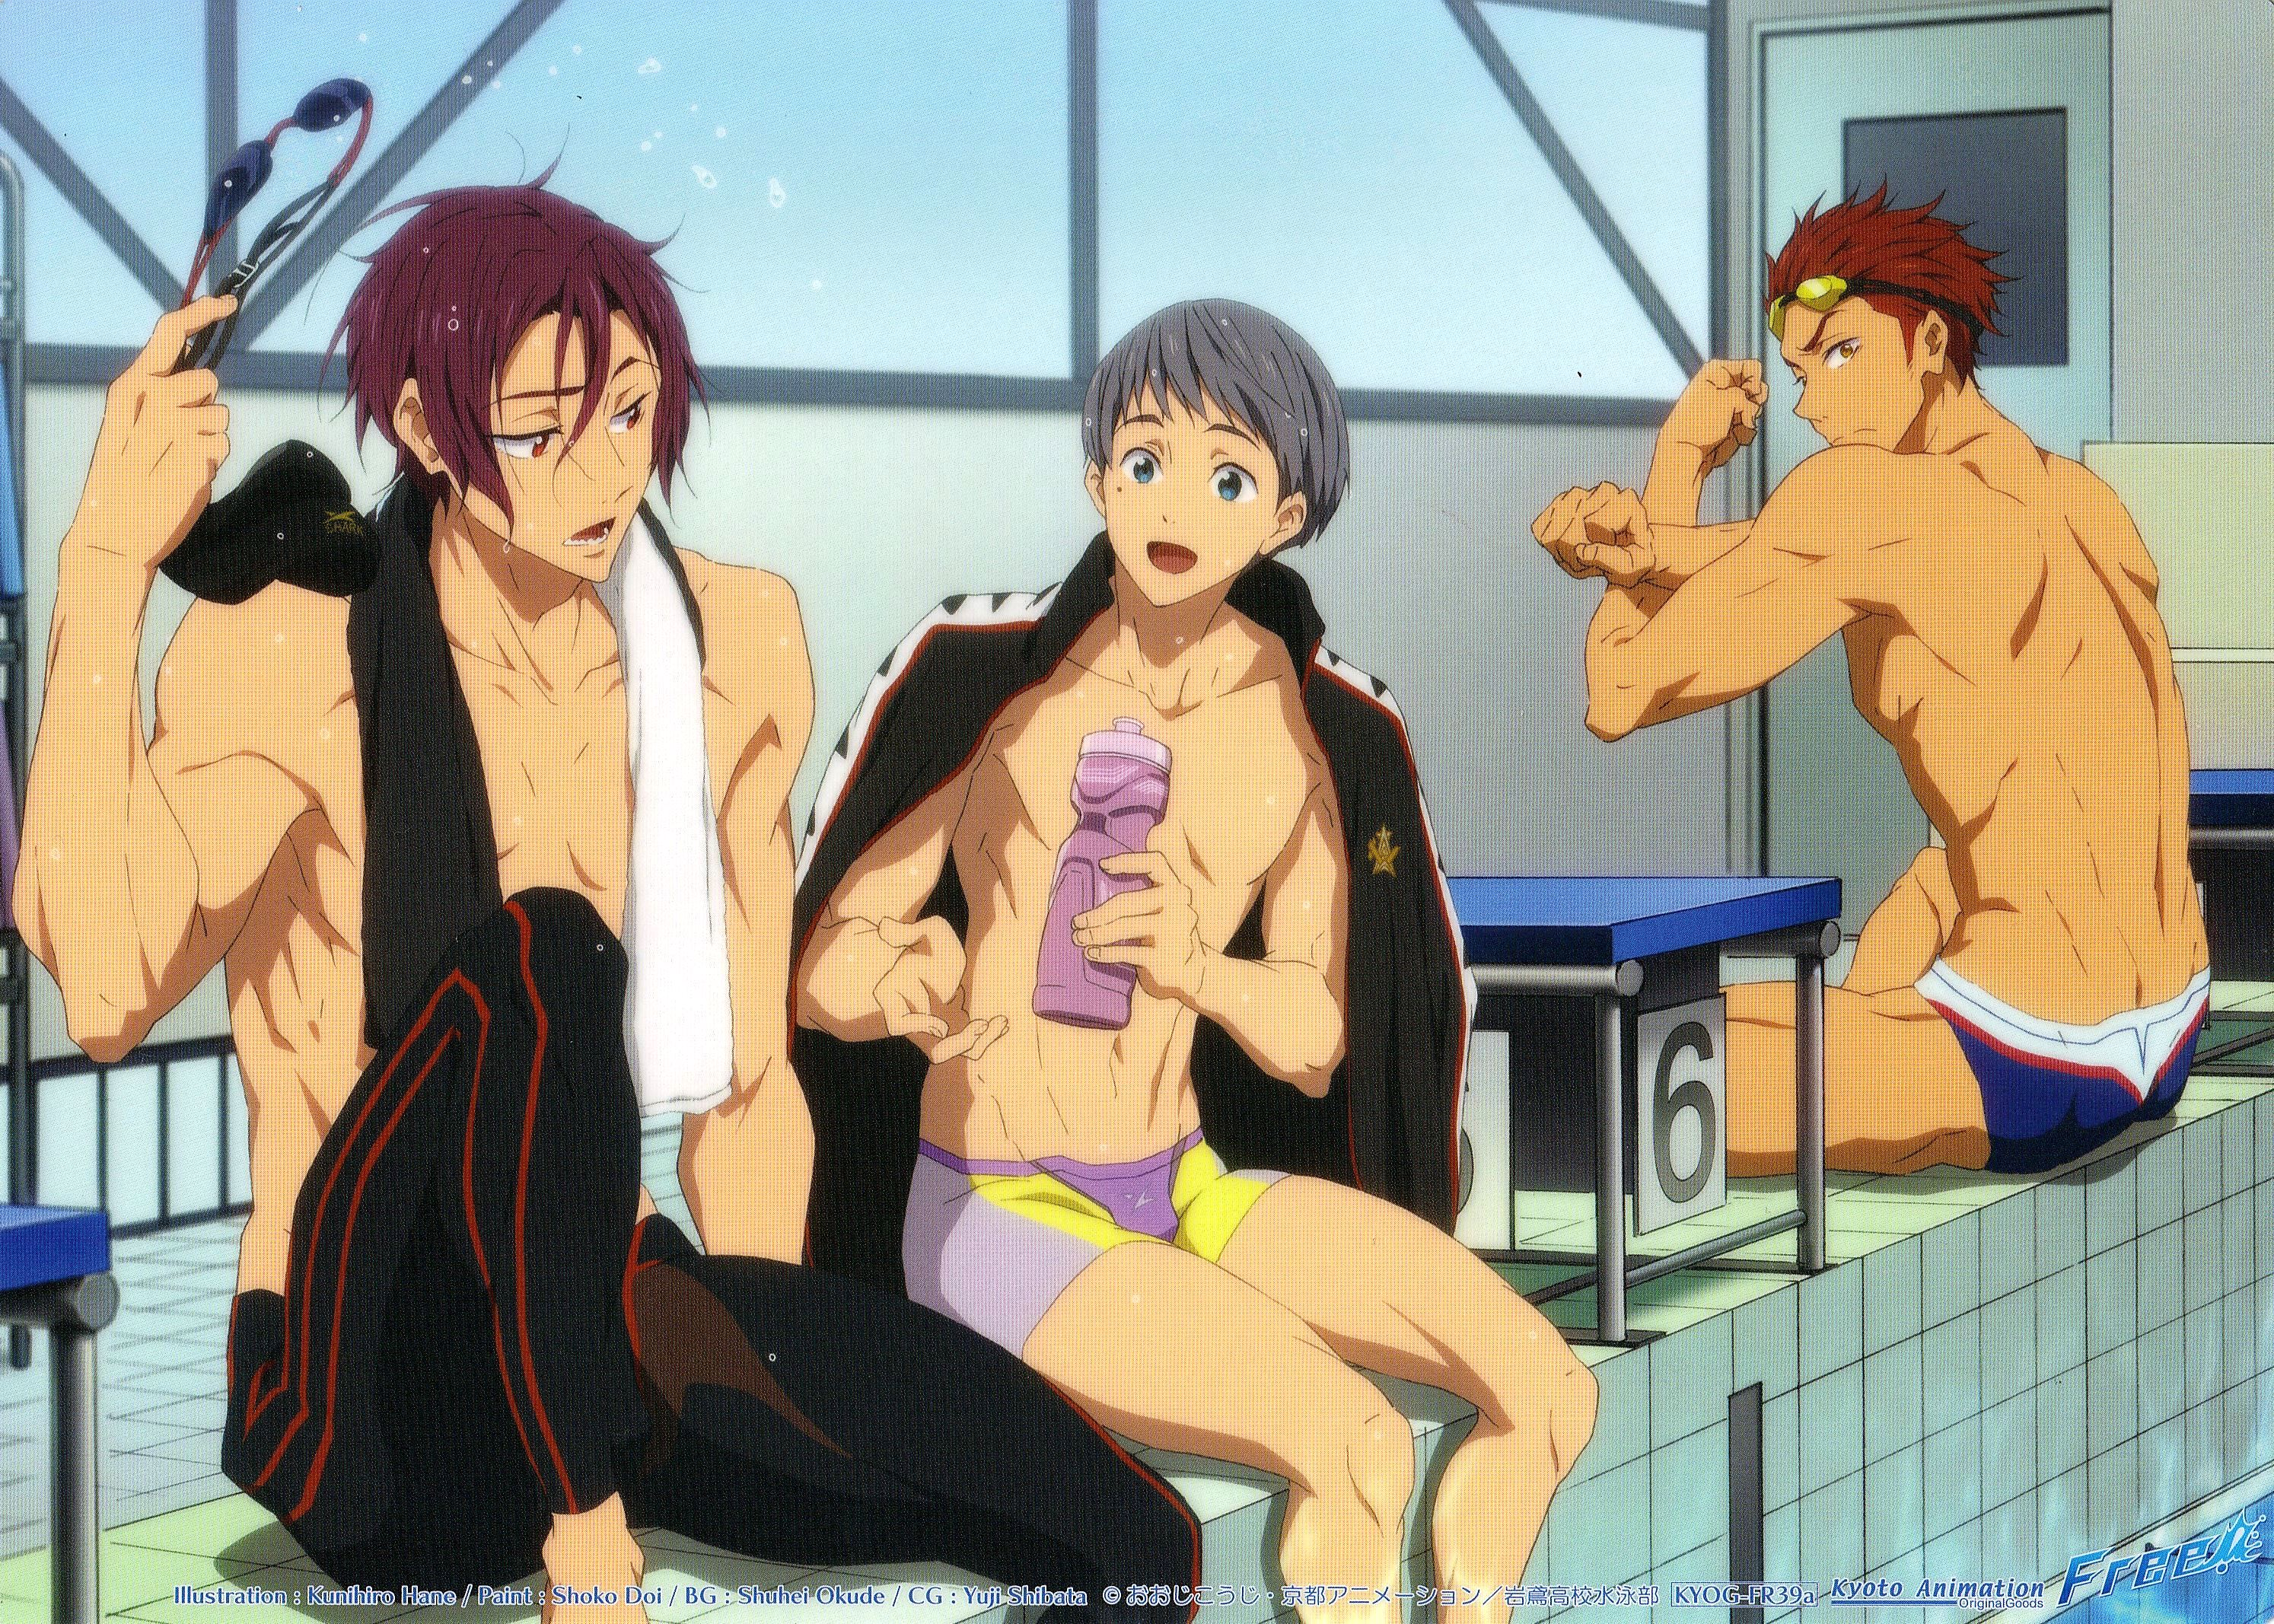 Free Rin Matsuoka Aiichiro Nitori Seijuurou Mikoshiba Minitokyo But big brother matsuoka rin ain't having it, even if the mikoshiba brothers bring their harmless it was funny, really, how despite how completely expected it was that haru and makoto would end up. minitokyo